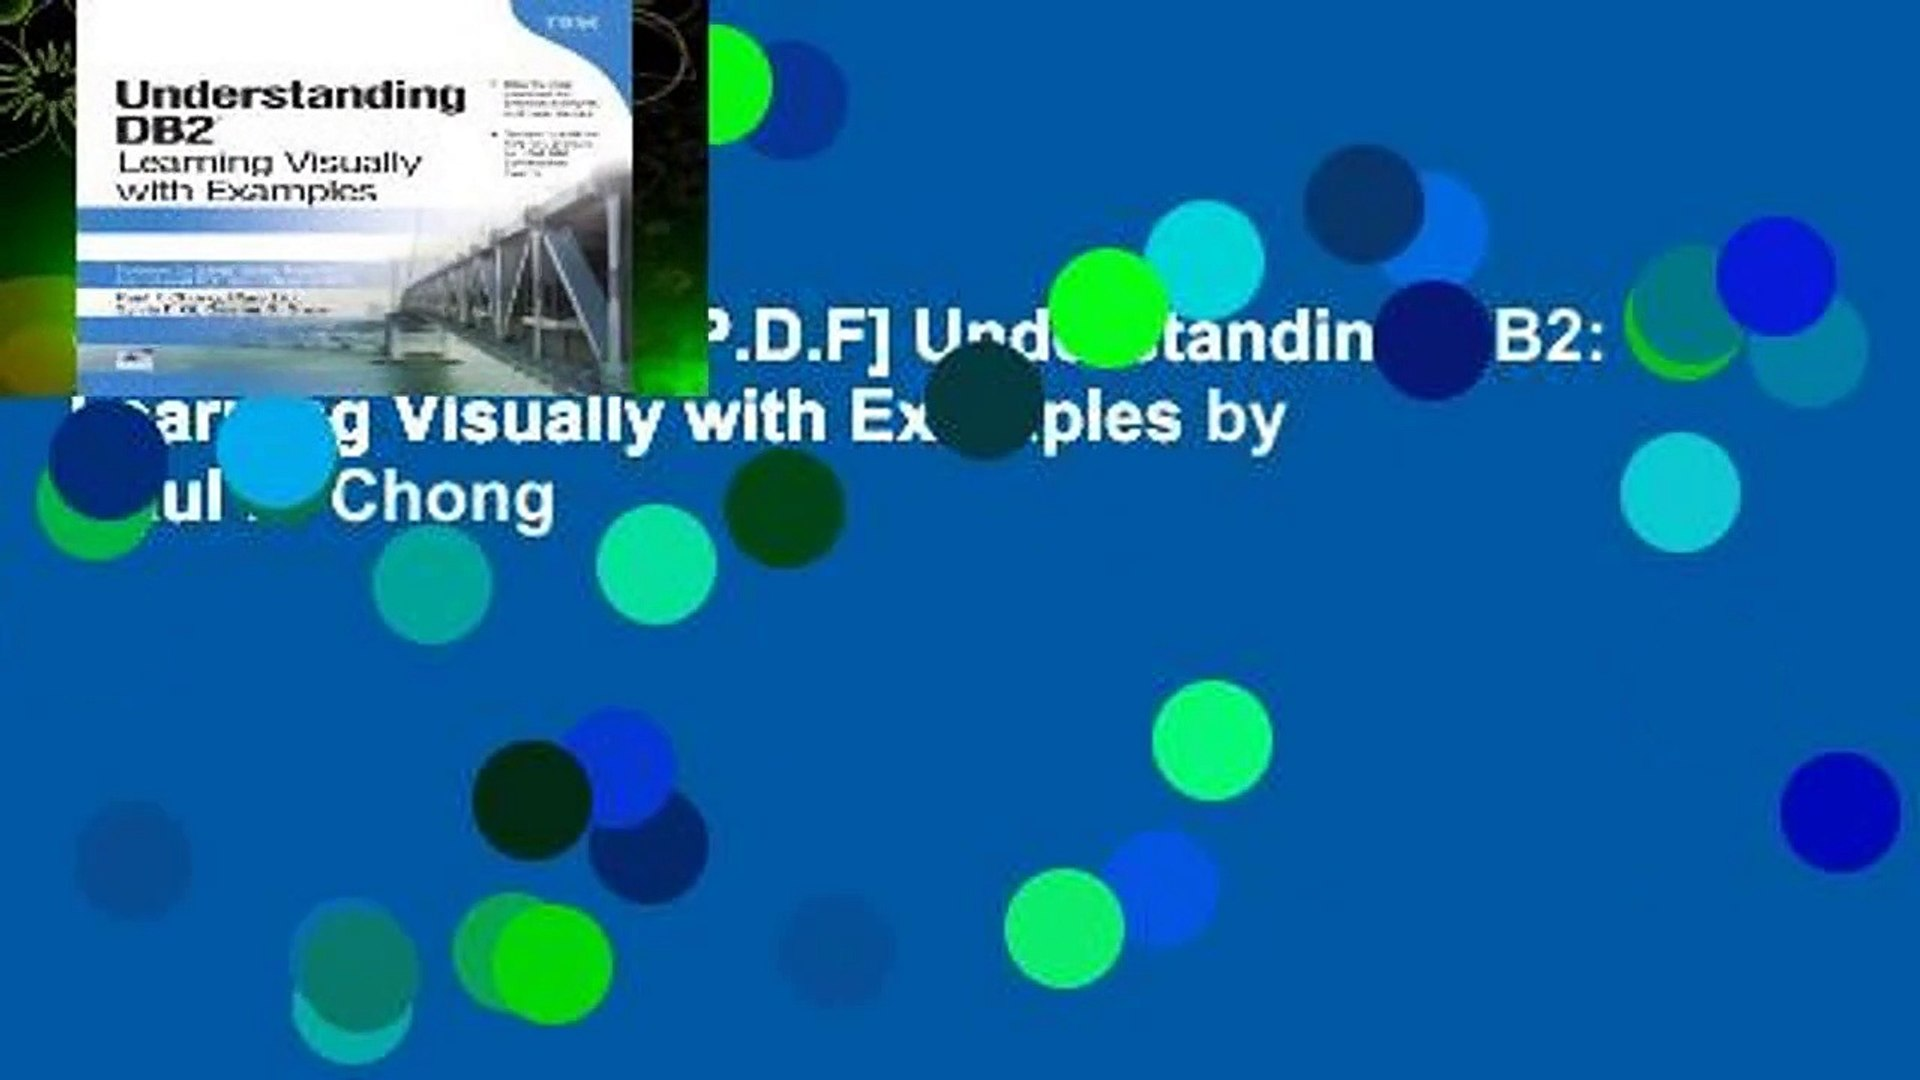 Learning Visually with Examples Understanding DB2 2nd Edition